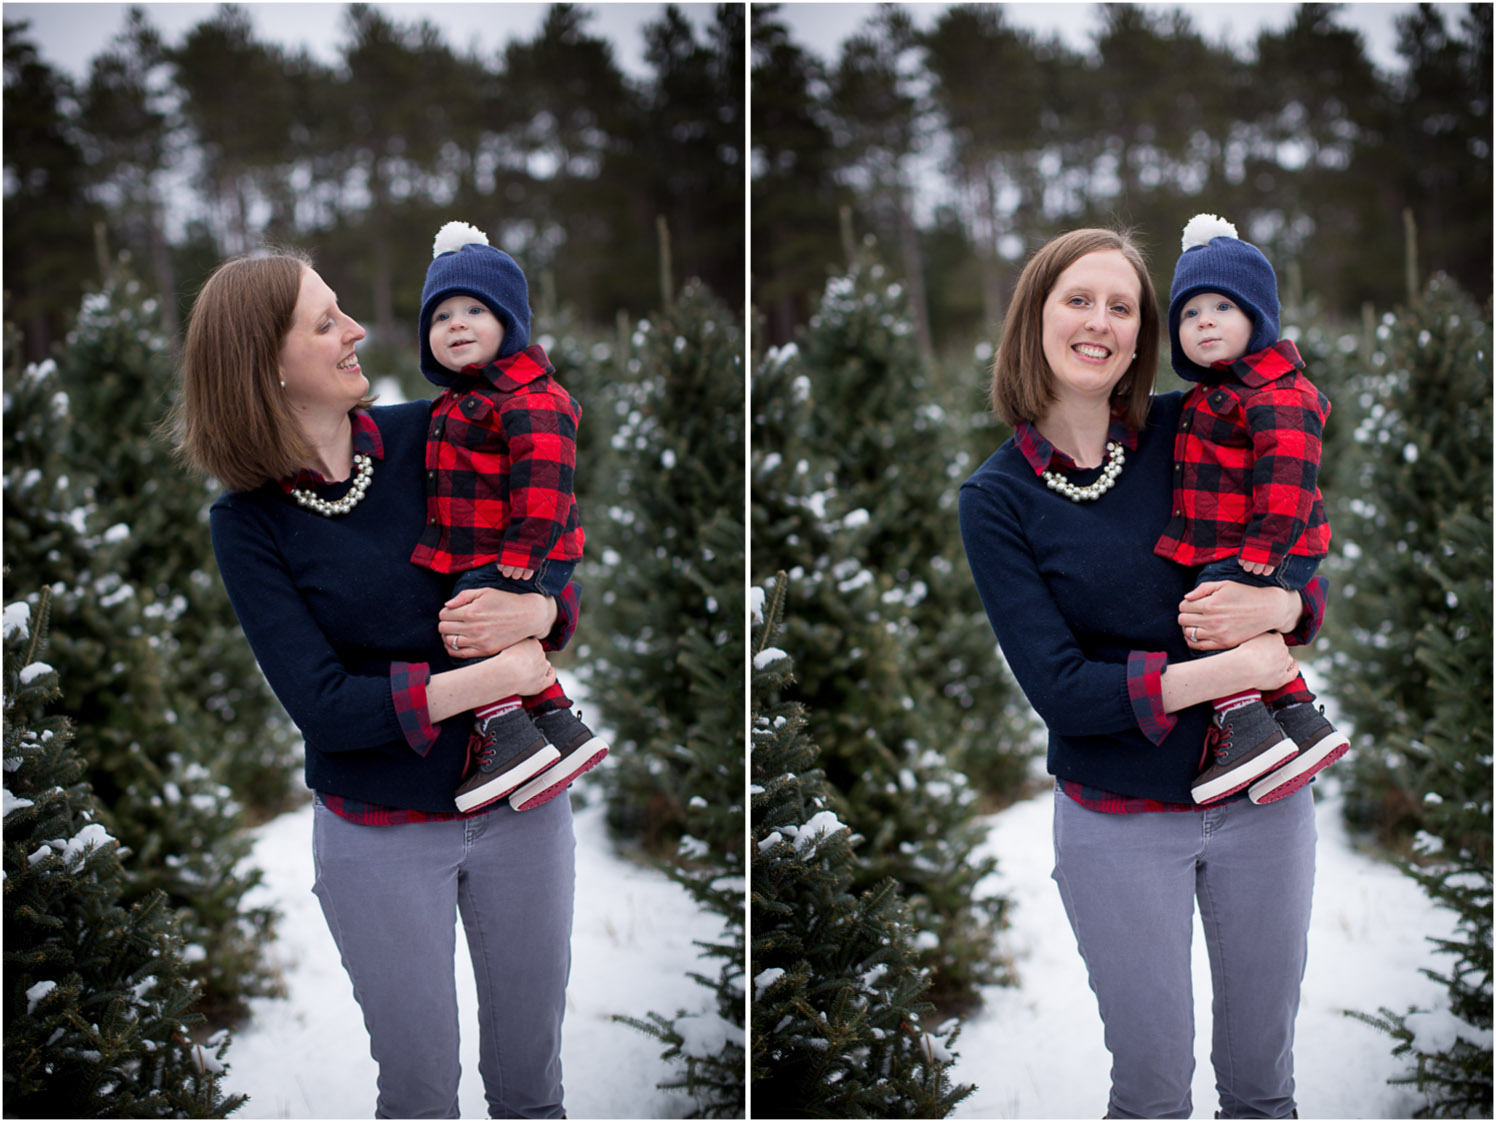 04-hansen-tree-farm-christmas-family-photographer-mn-mother-son-winter-plaid-red-and-navy-mahonen-photography.jpg